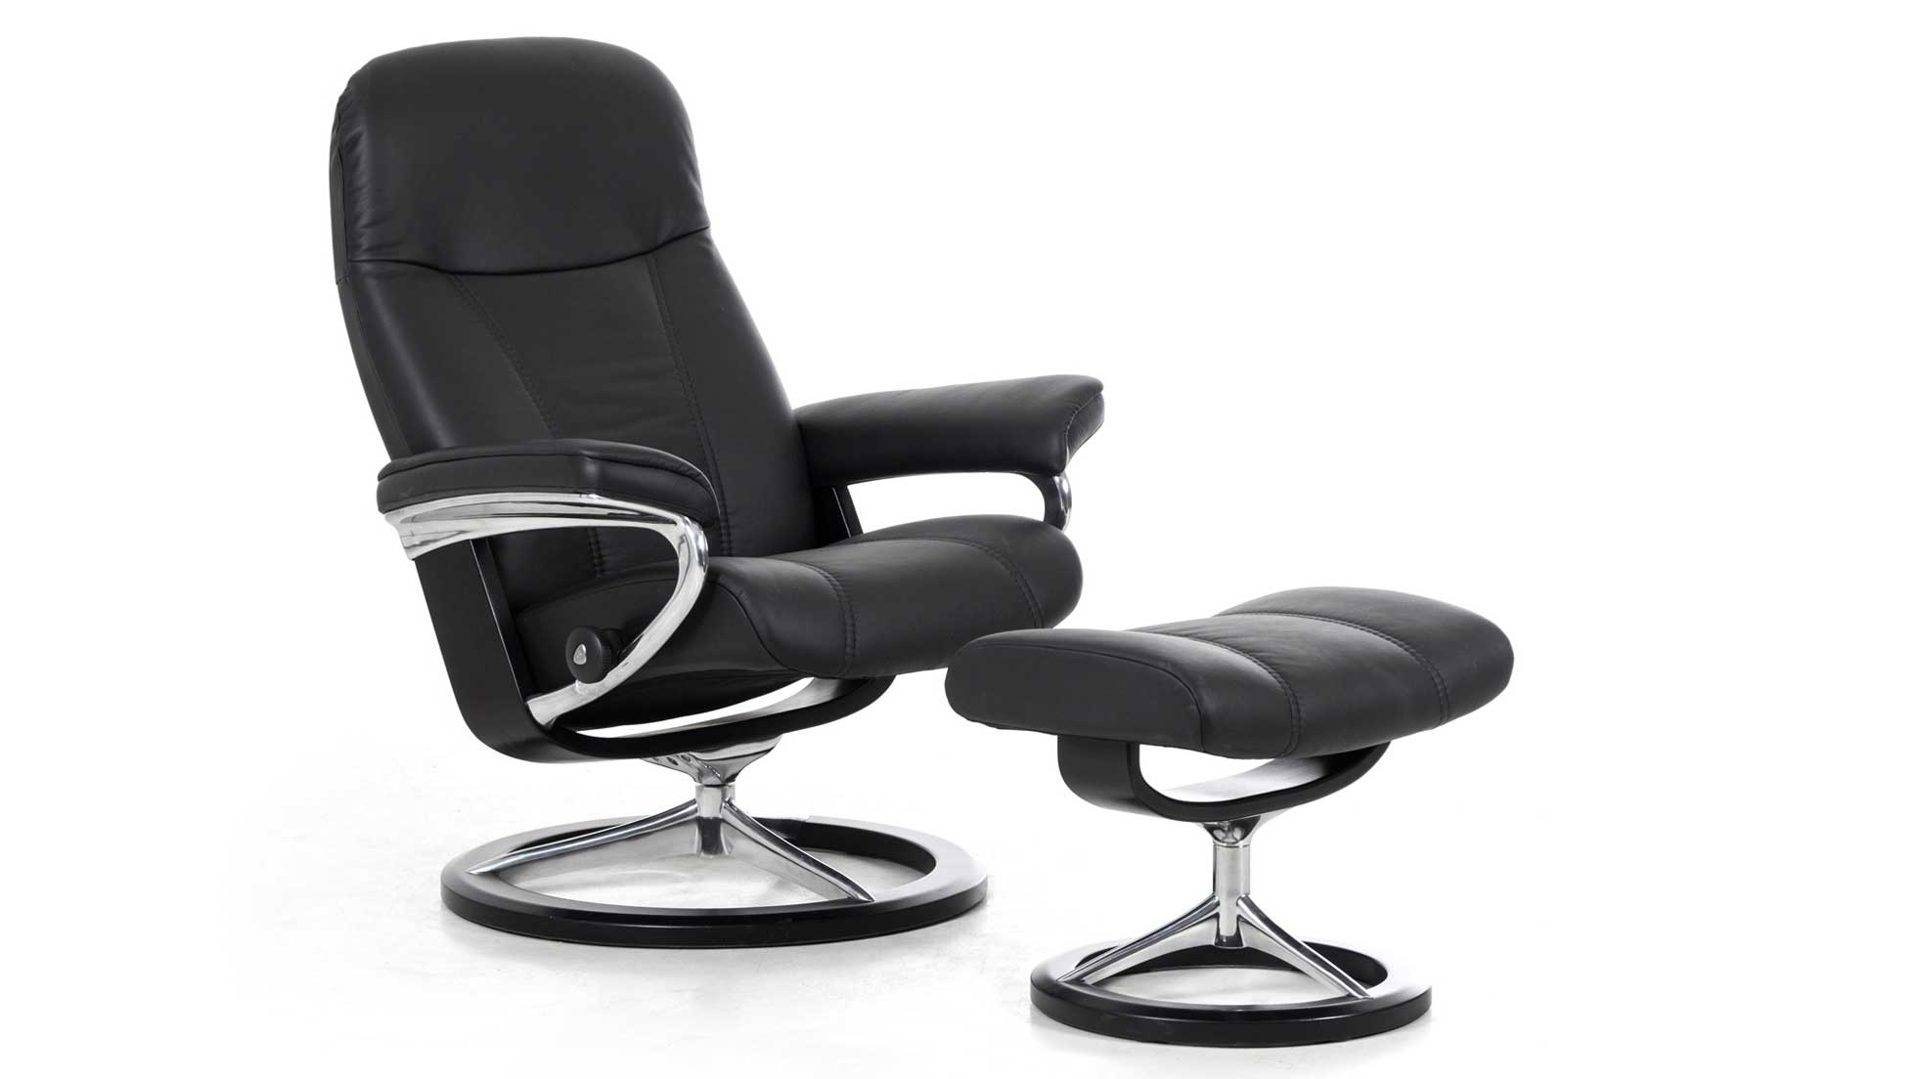 Stressless Sessel Mit Hocker Stressless Sessel Schwarz